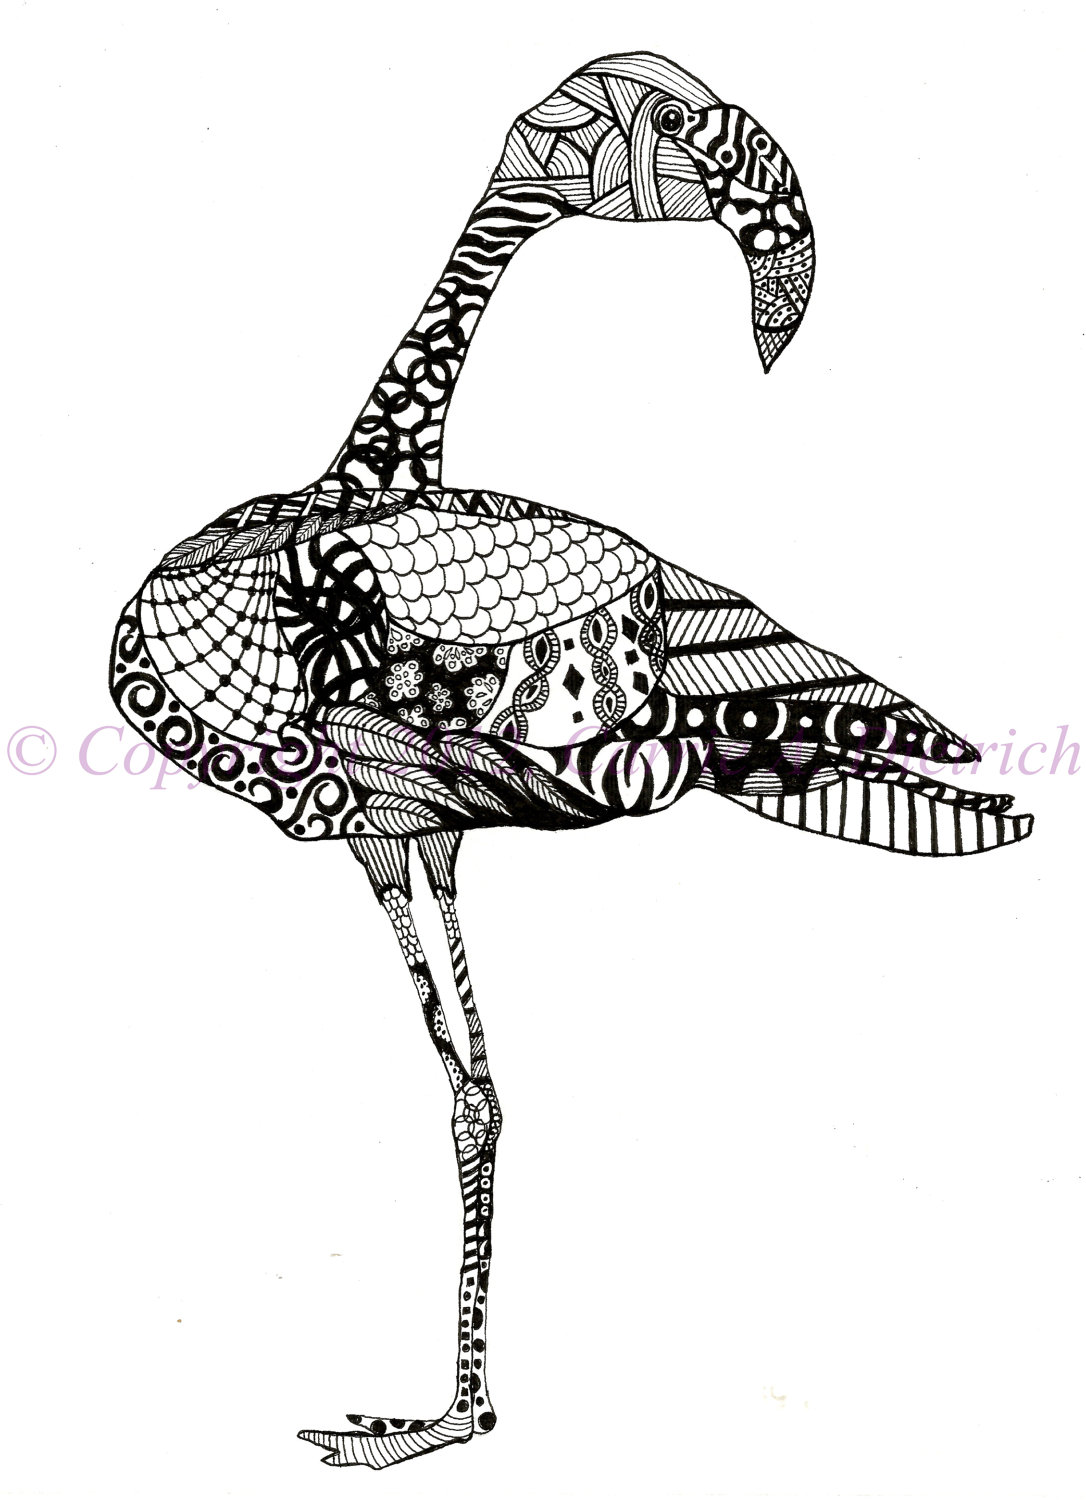 Drawn animal flamingo #14